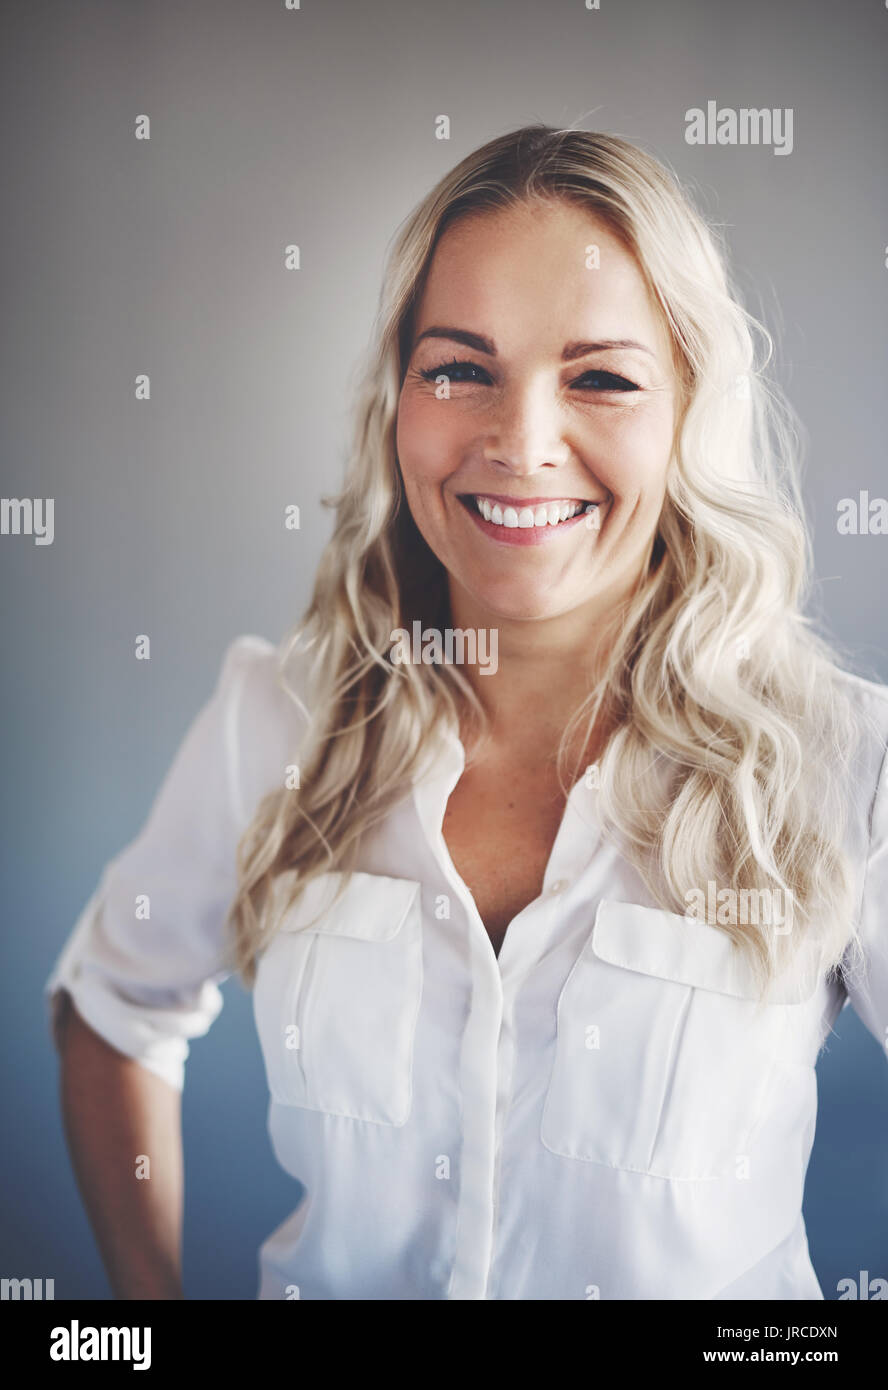 Portrait of a smiling young businesswoman with blonde hair standing alone in an office with her hands on her hips - Stock Image